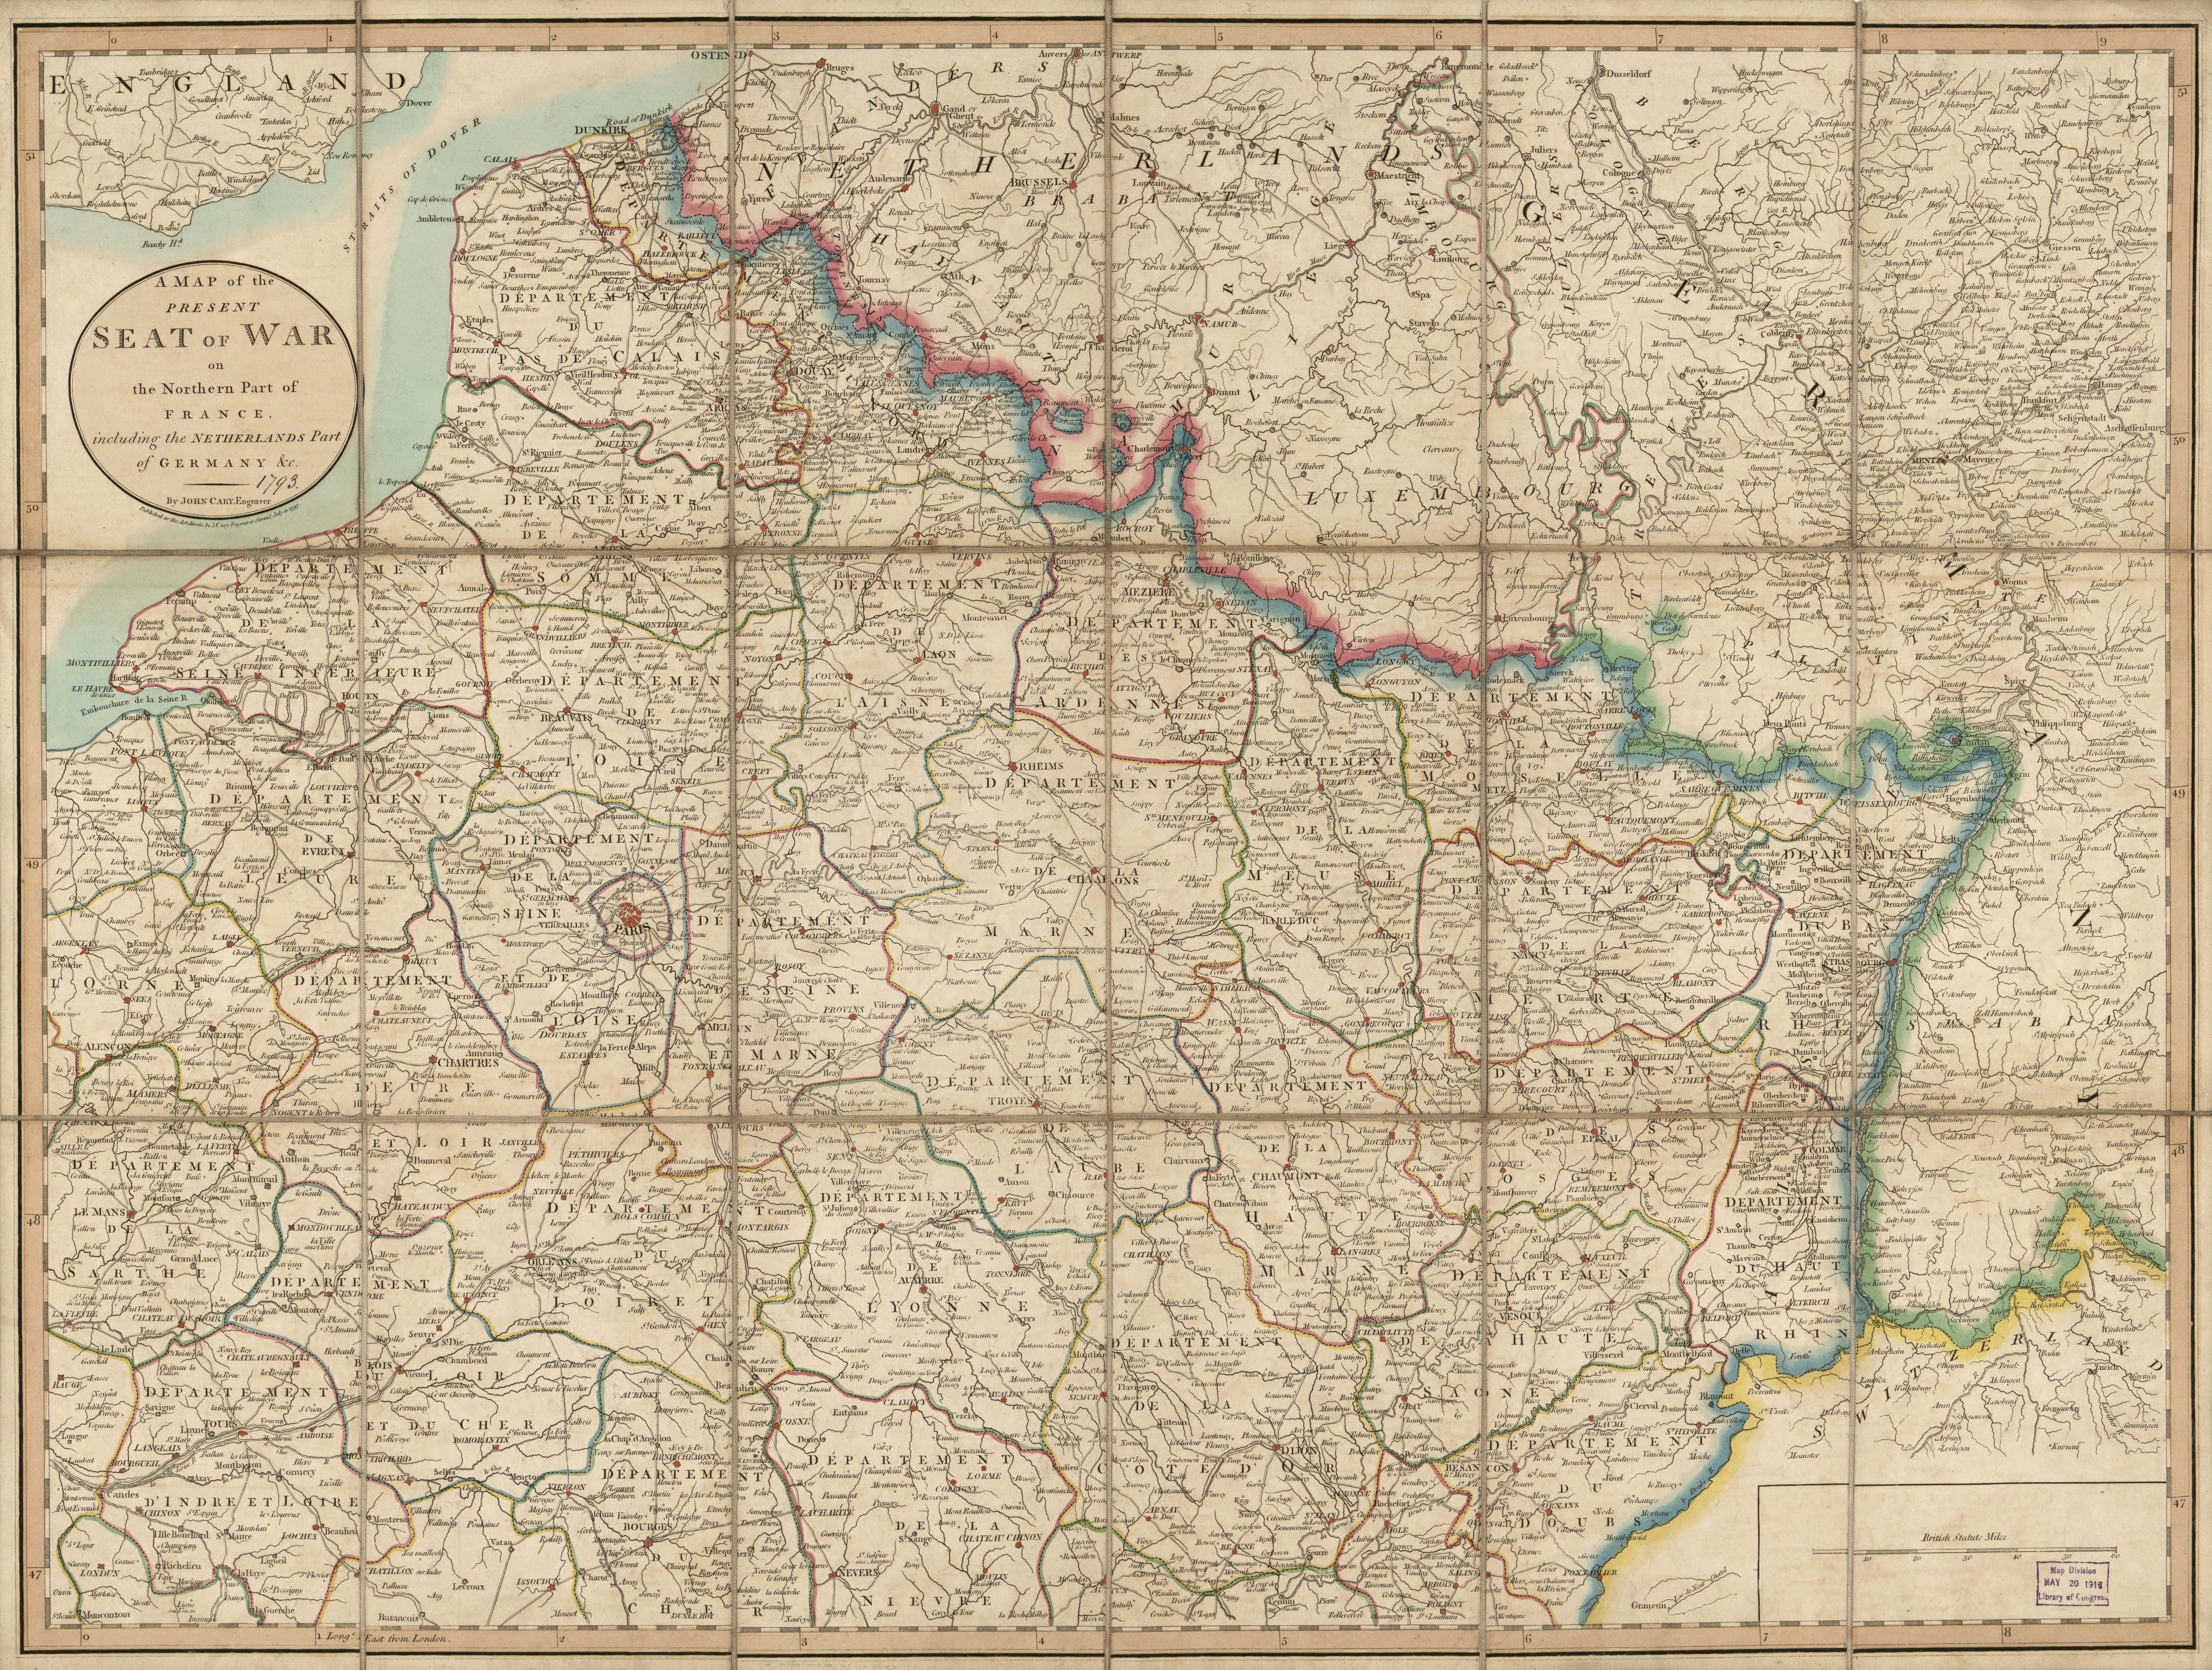 Map Of Germany France Border.File A Map Of The Present Seat Of War On The Northern Part Of France